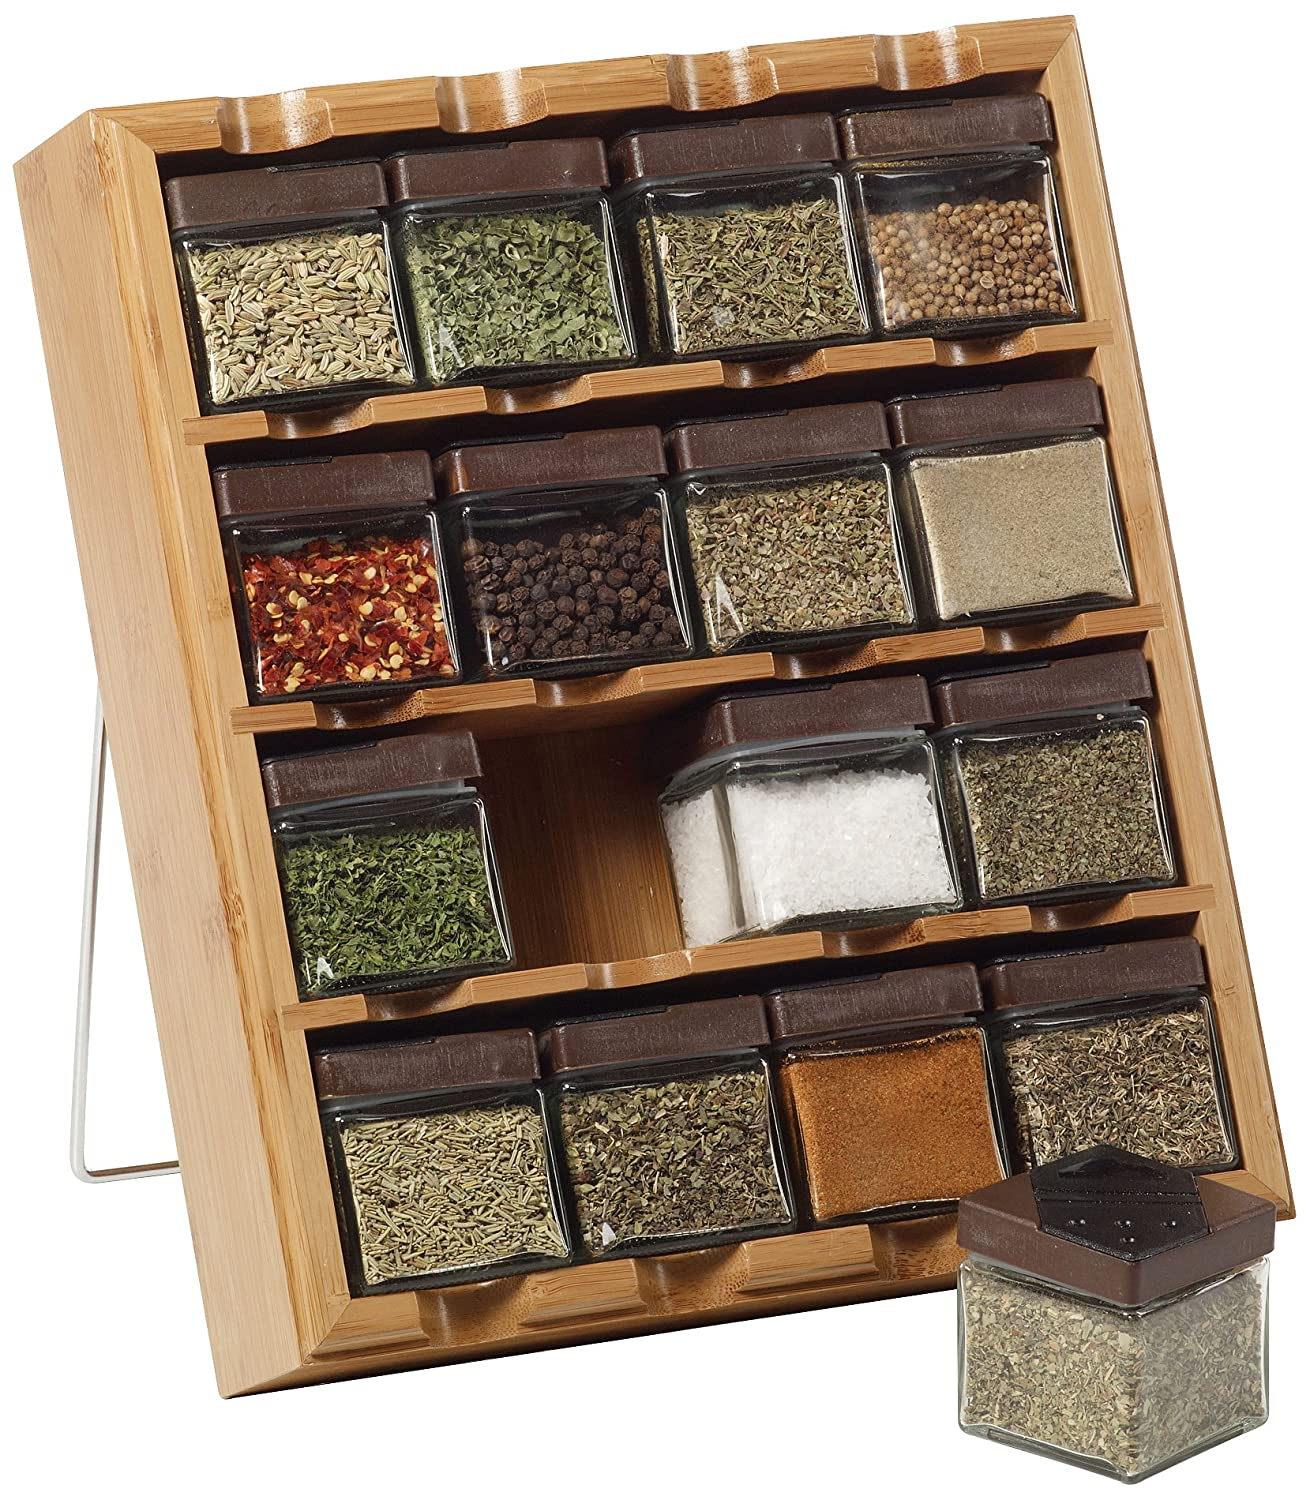 Kitchen Spice Rack Amazoncom Kamenstein Bamboo Inspirations 16 Cube Spice Rack With